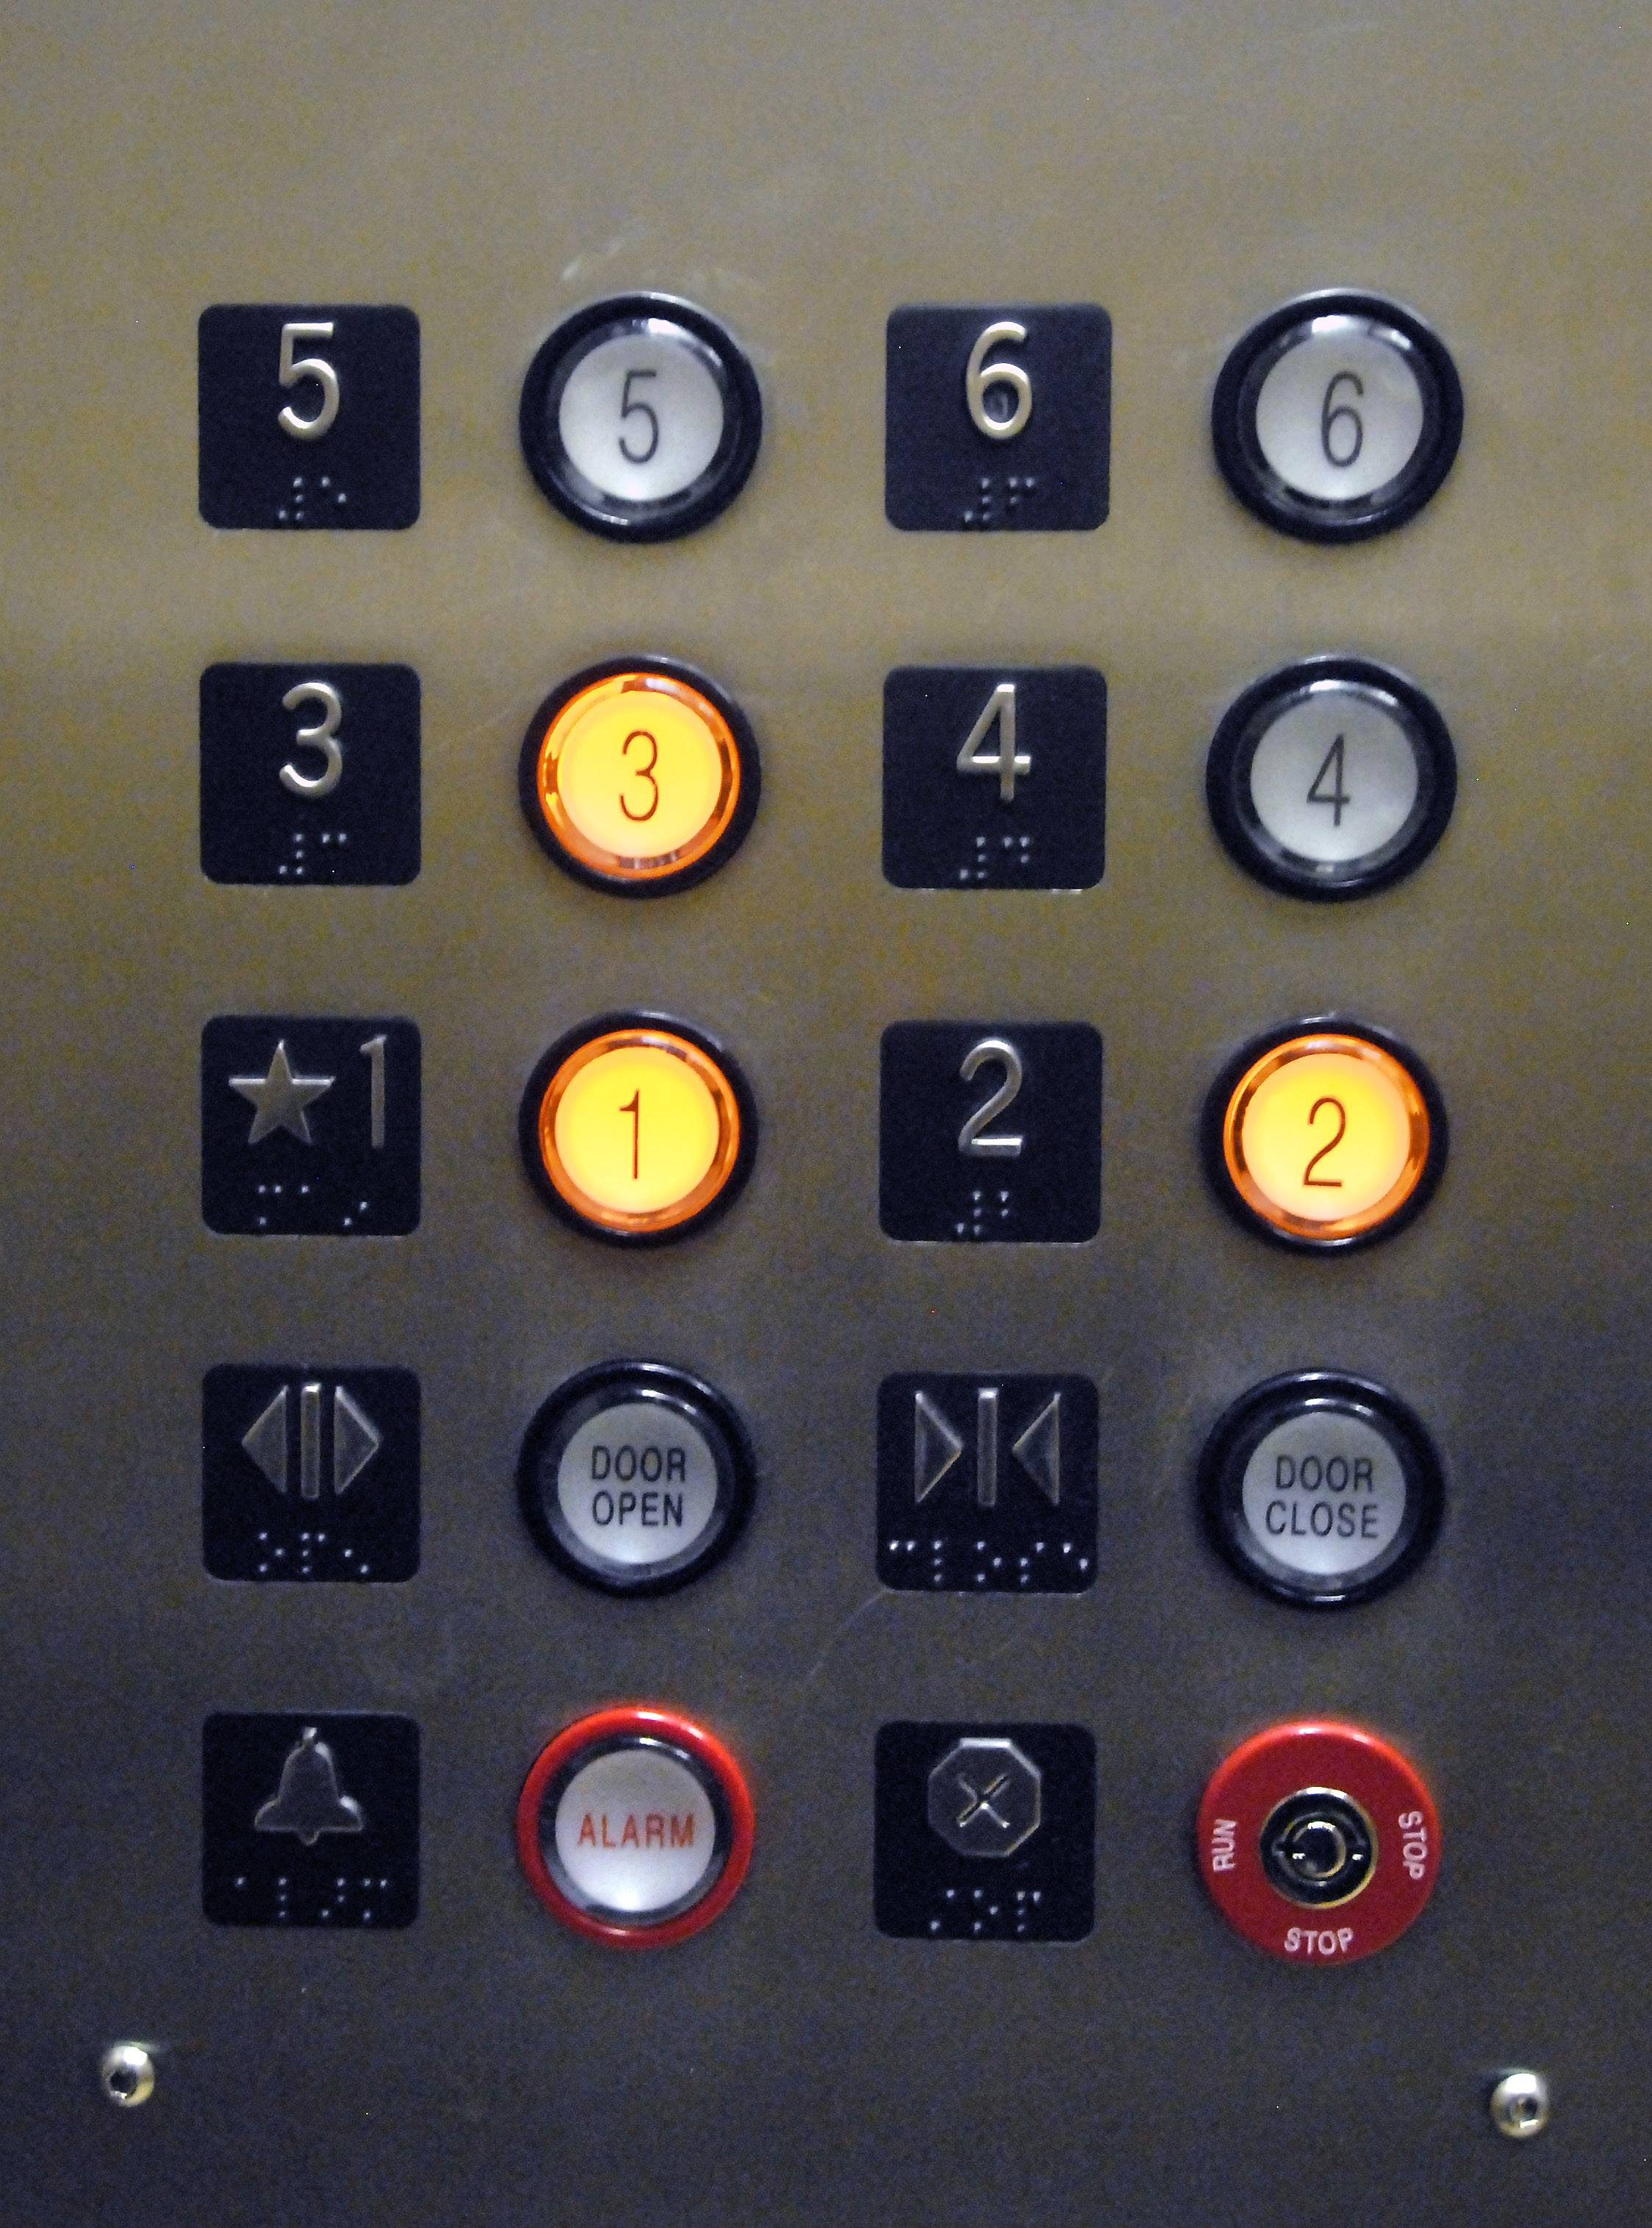 These simple buttons are a sign that you are standing in a place where anything can happen, and nothing usually does.